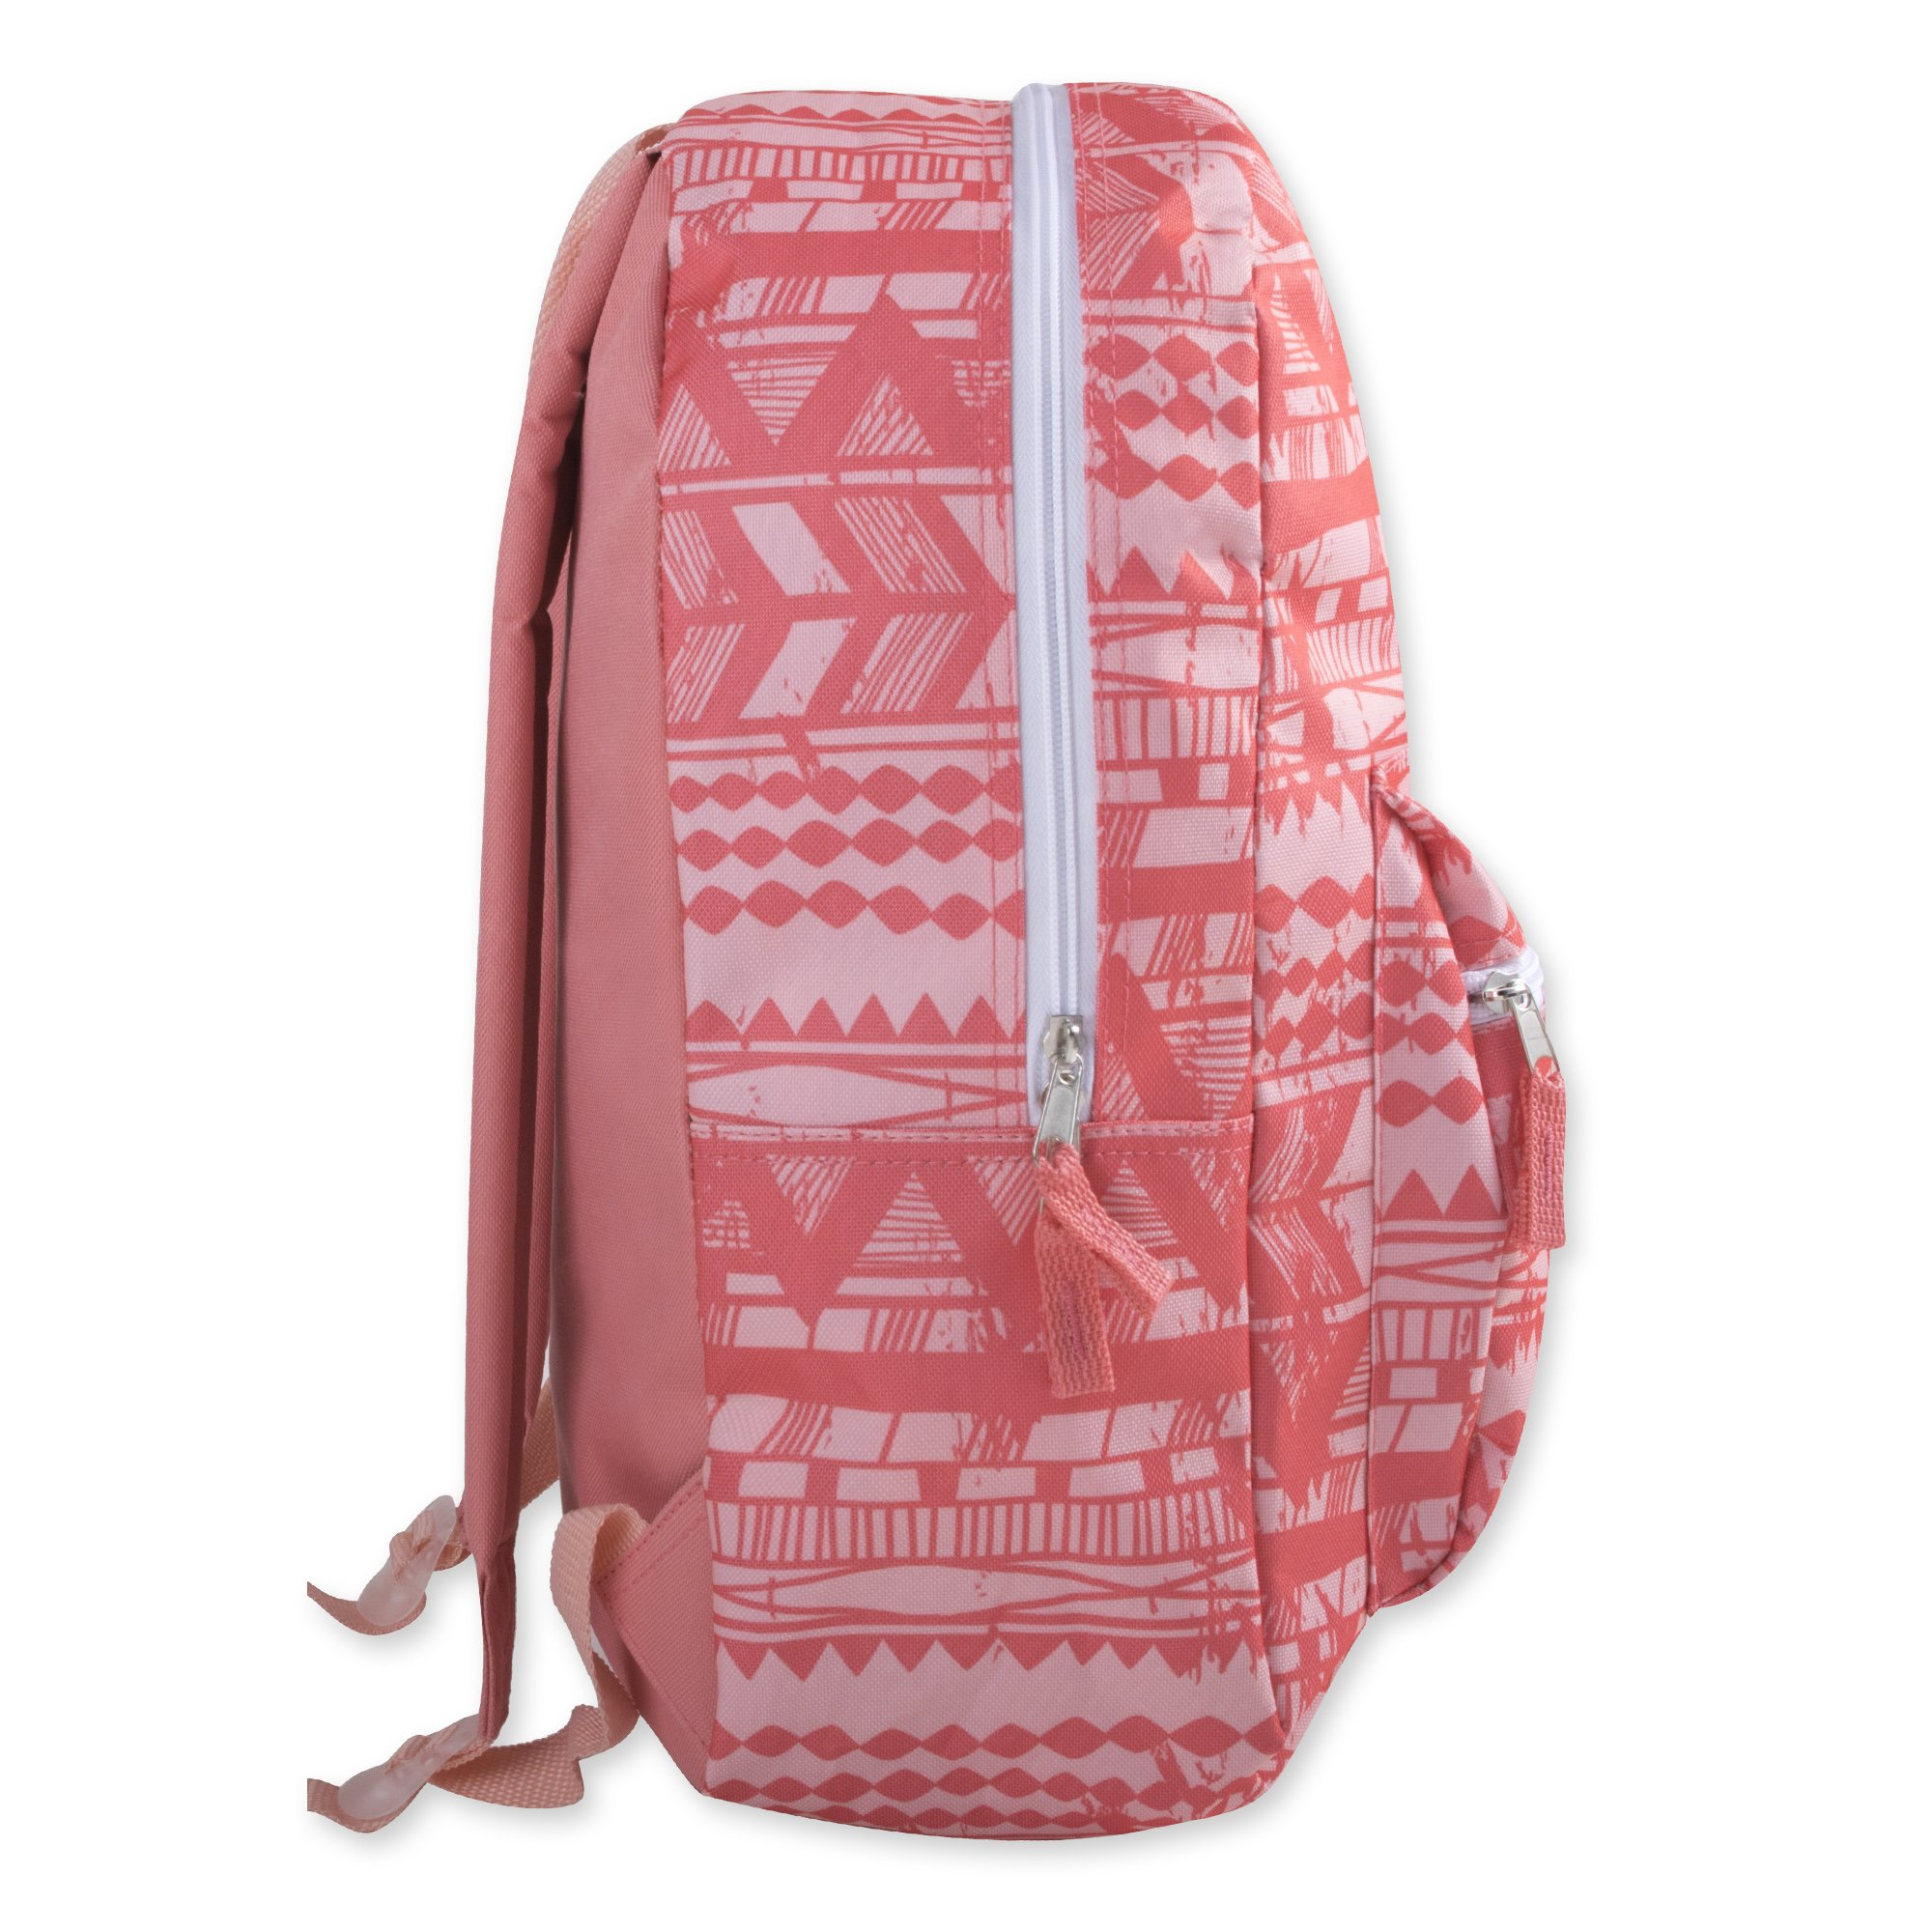 Trailmaker Girls' All Over Printed Backpack 17 Inch With Padded Straps (Peach Tribal) by Trail maker (Image #3)